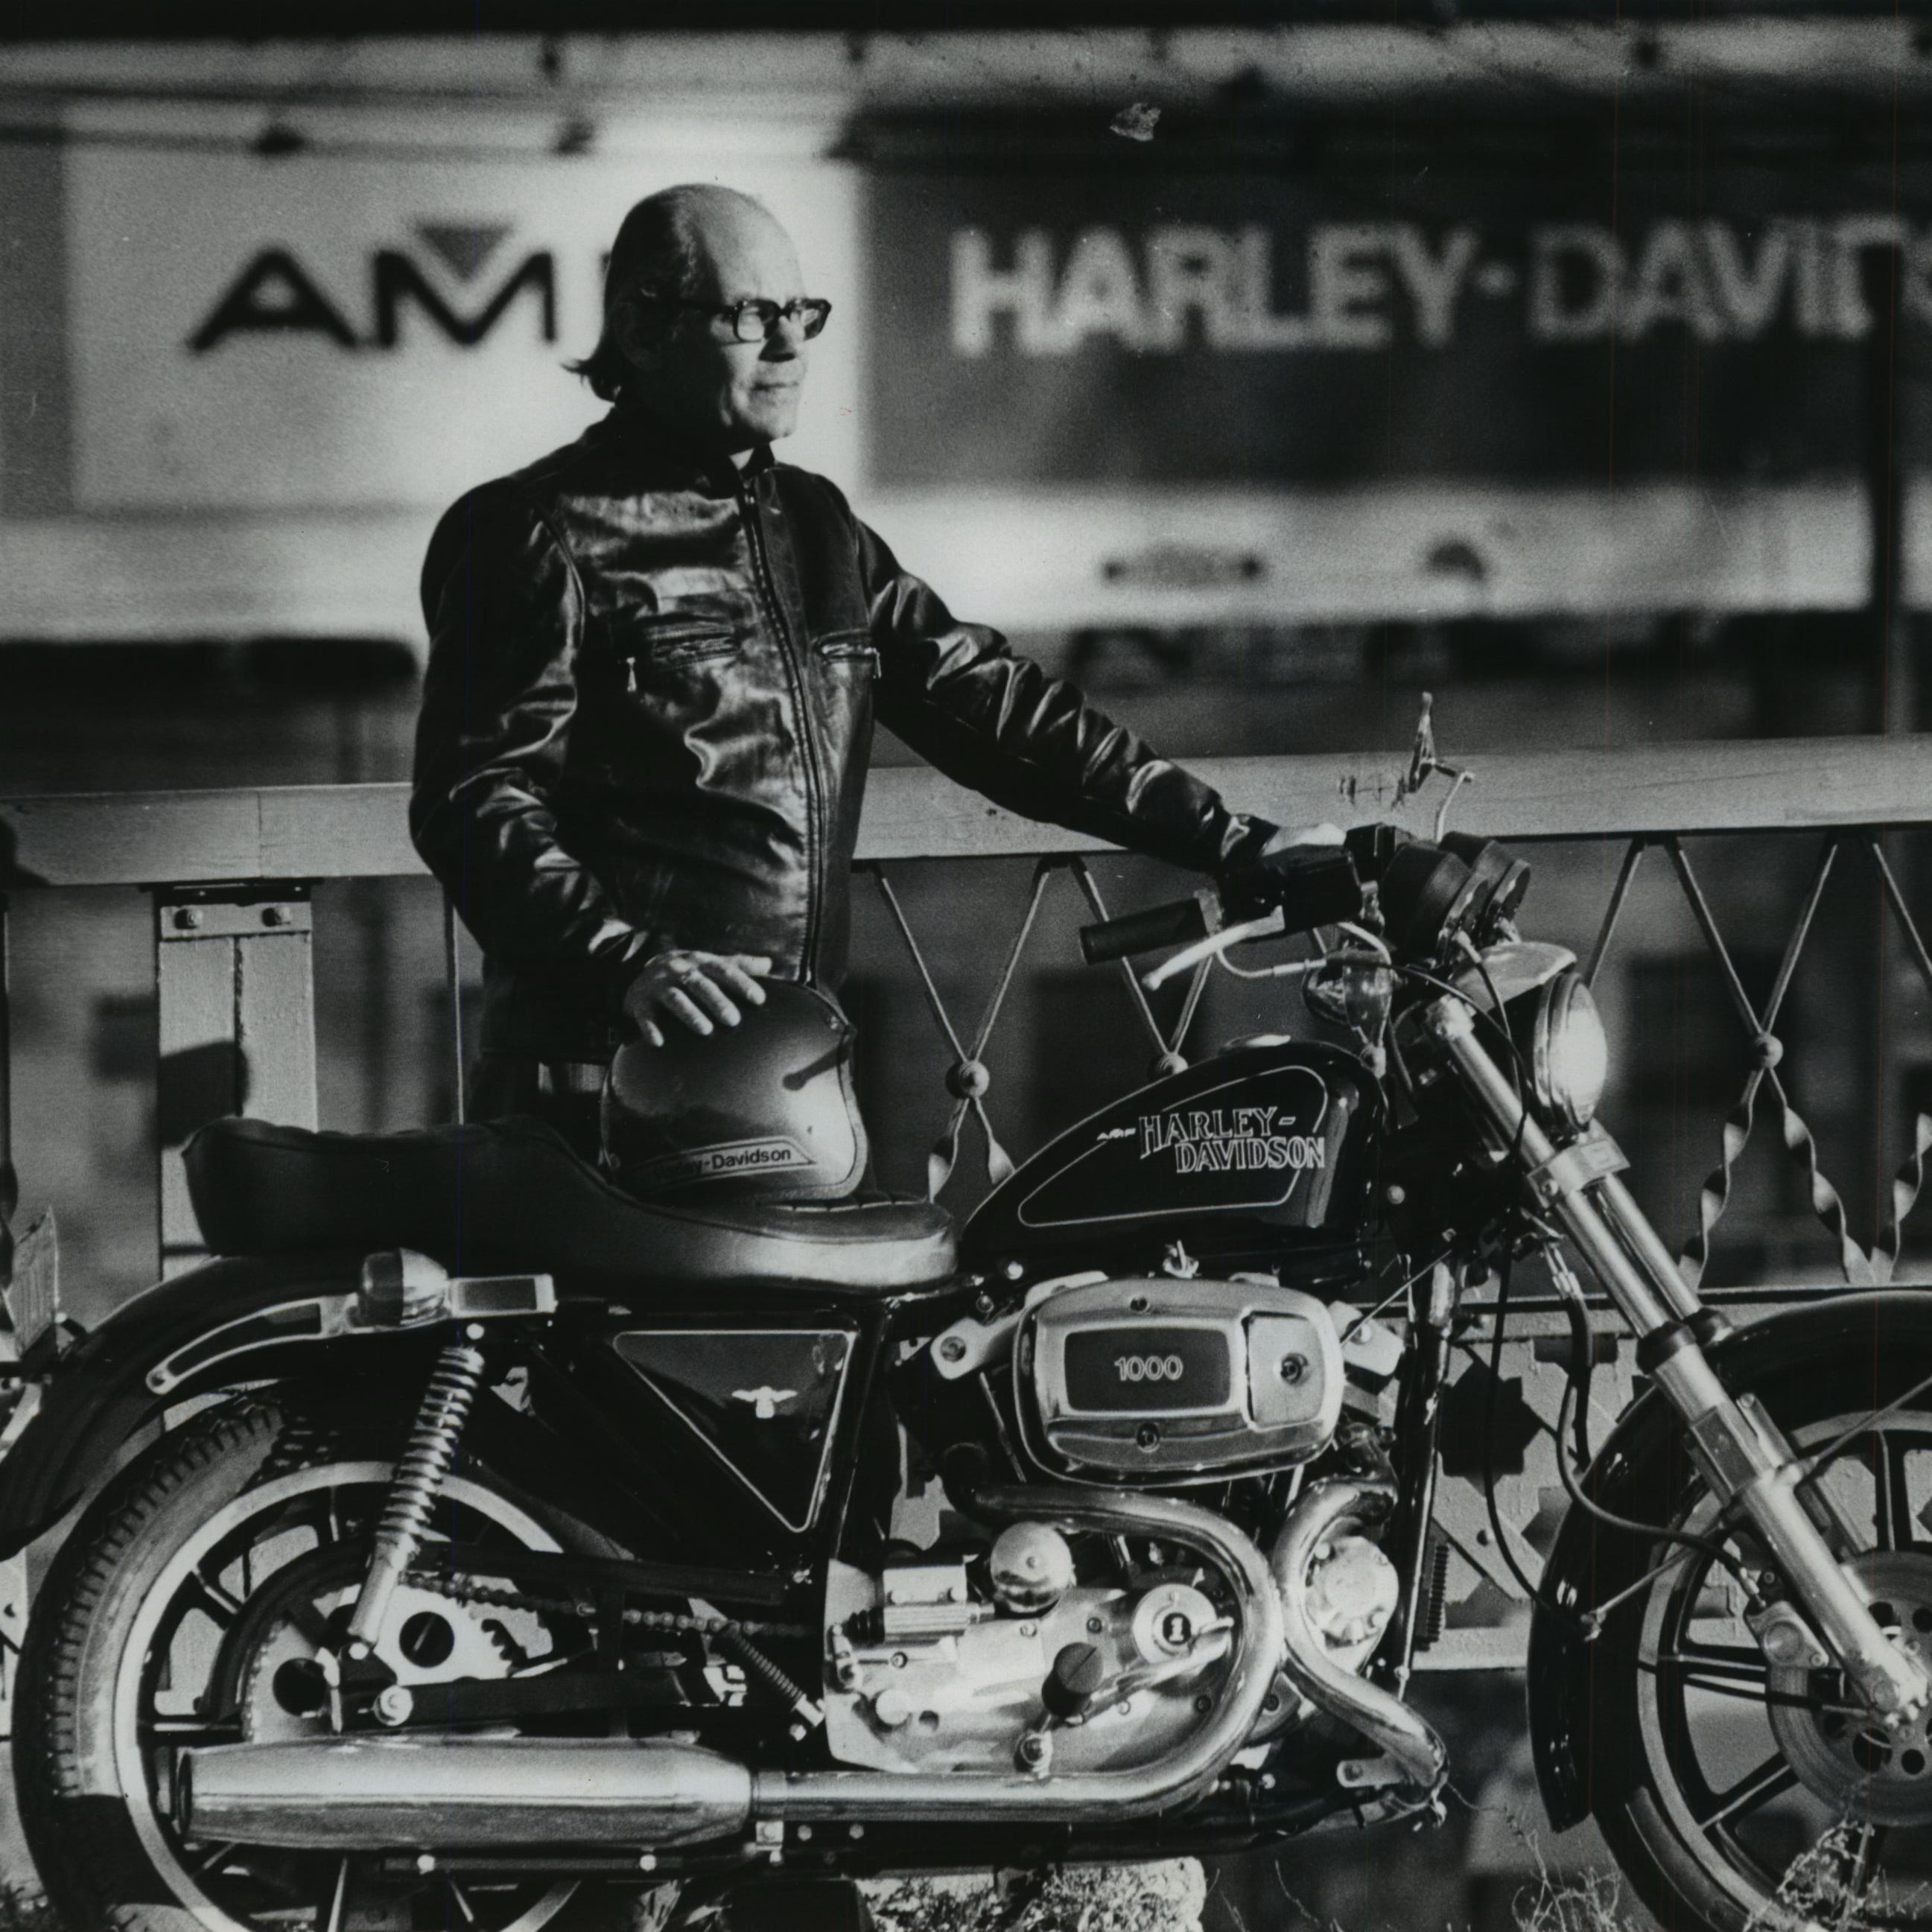 Faced with a hostile takeover, Harley-Davidson looked for help, and found AMF